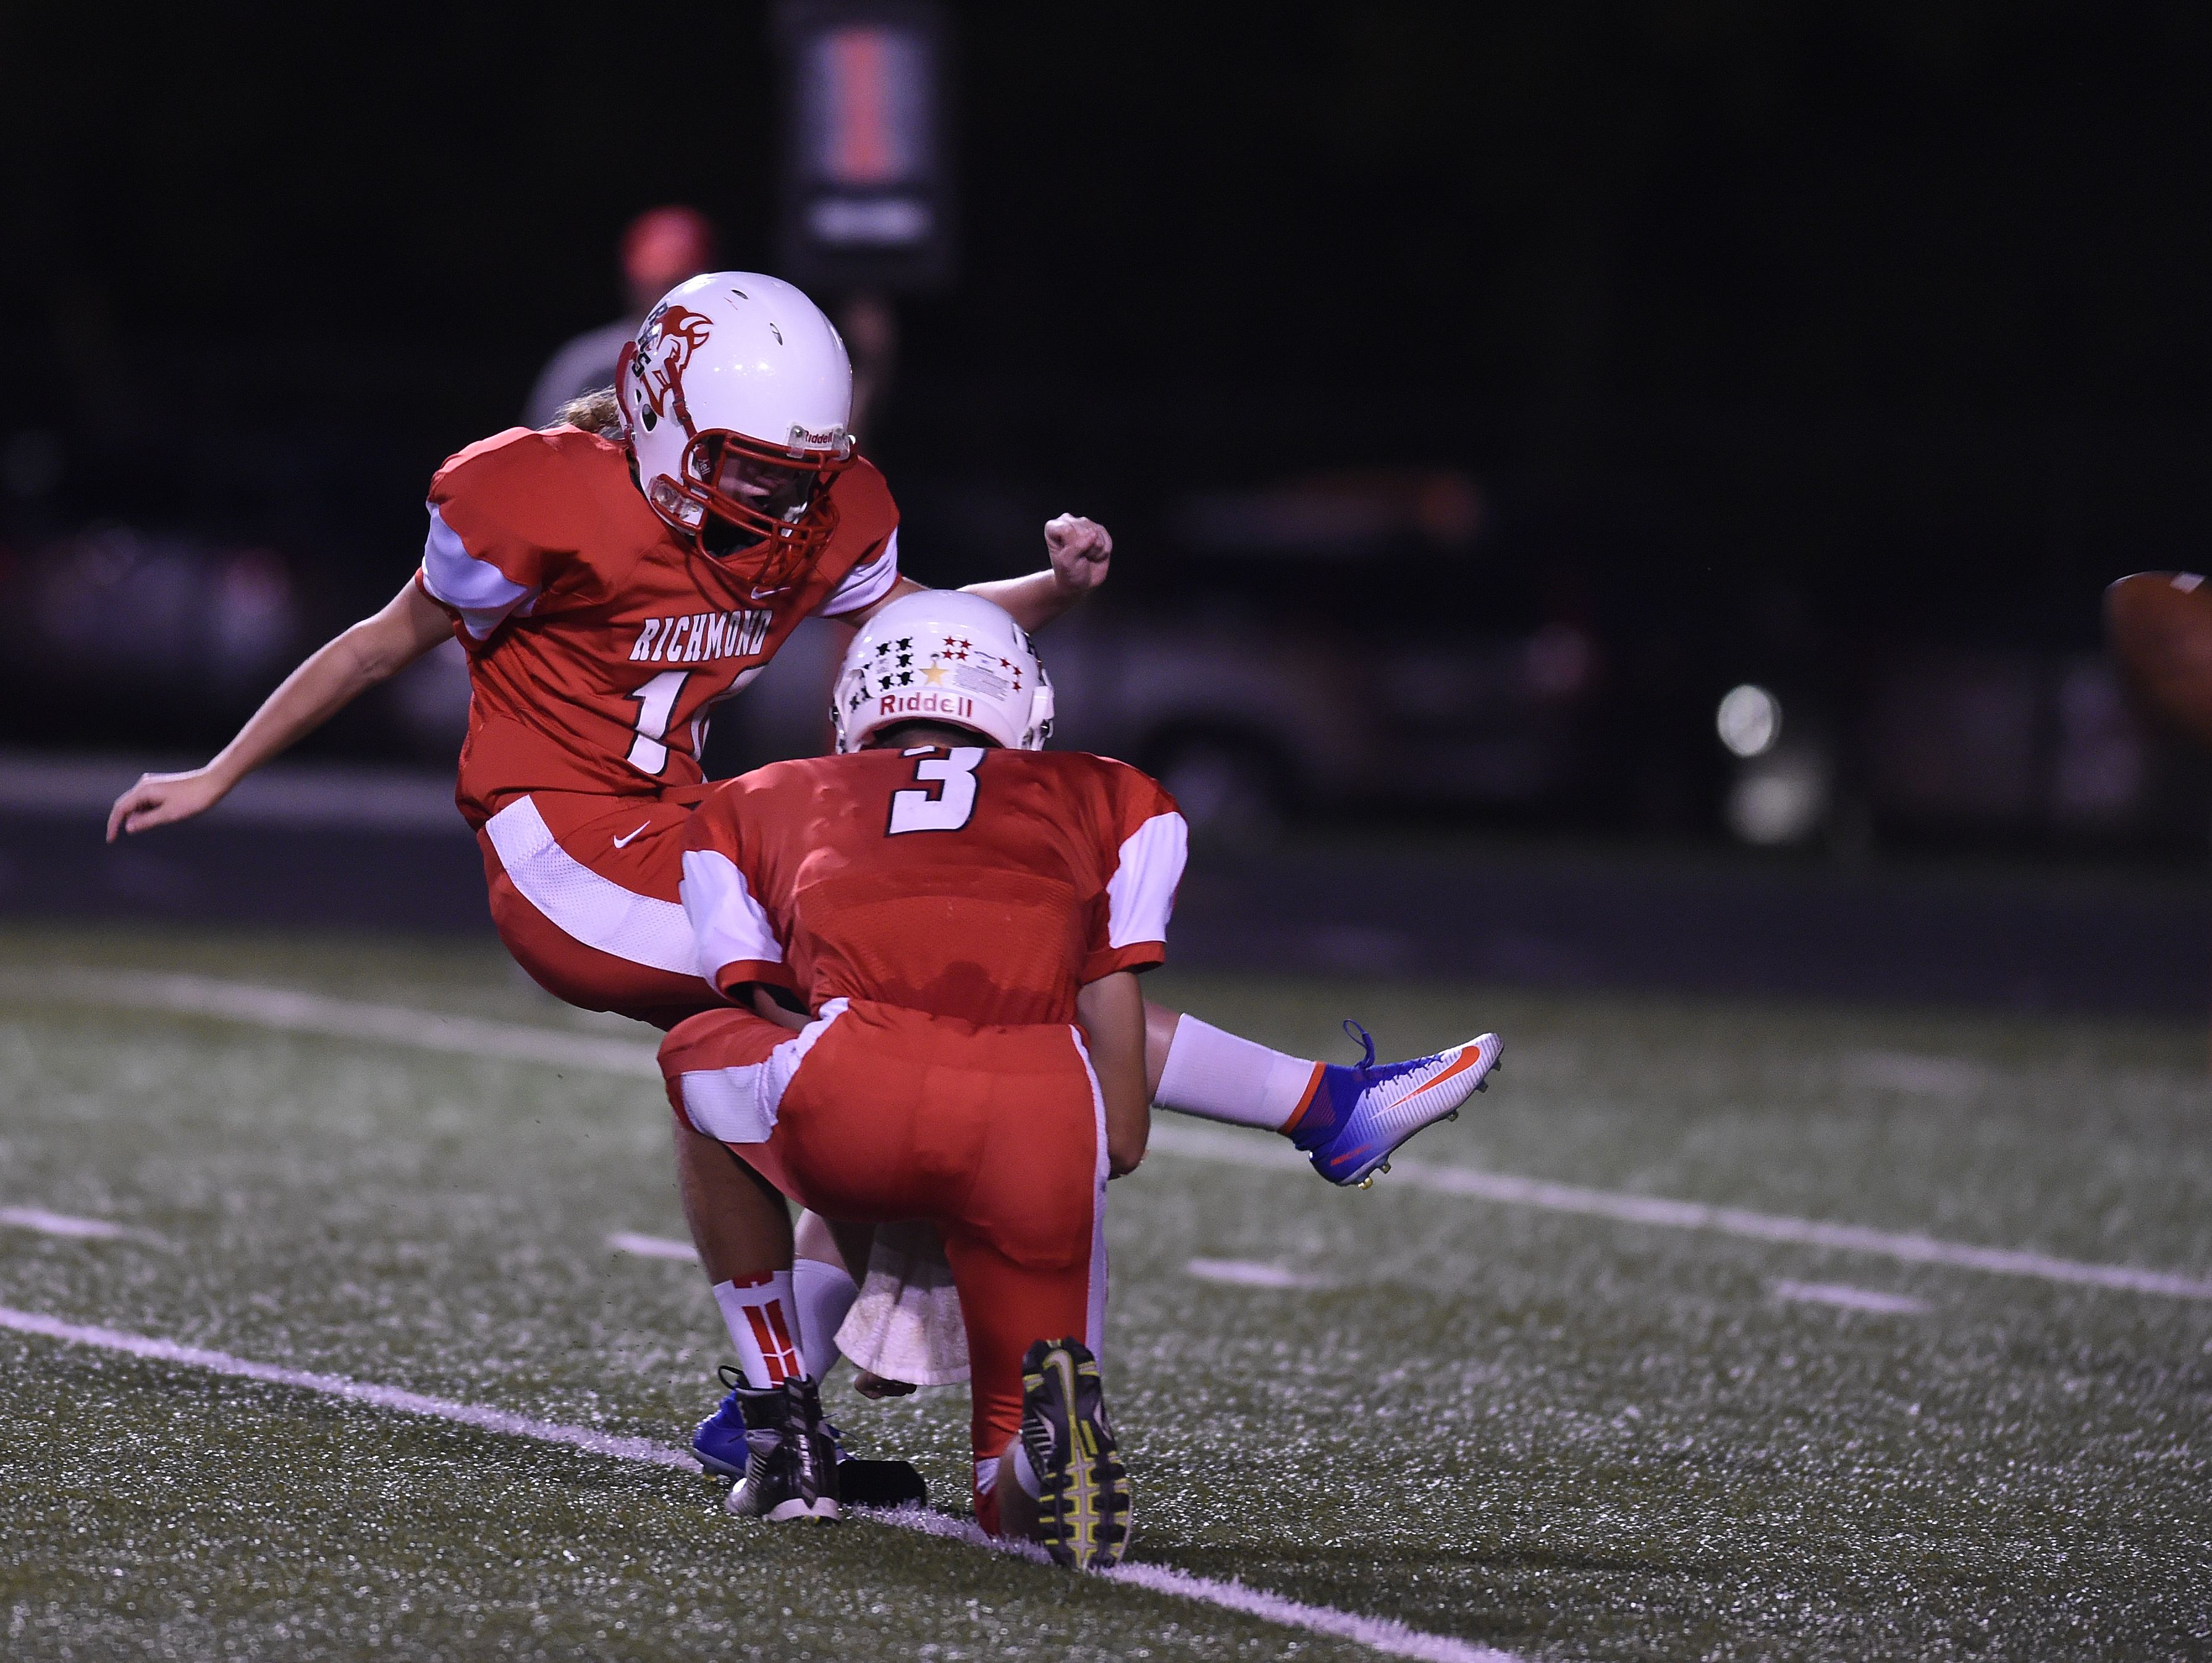 Richmond's Alec Snedigar holds the ball as Alexis Shiplett kicks an extra point against Logansport Friday, Sept. 23, 2016 during a football game on Lyboult Field.